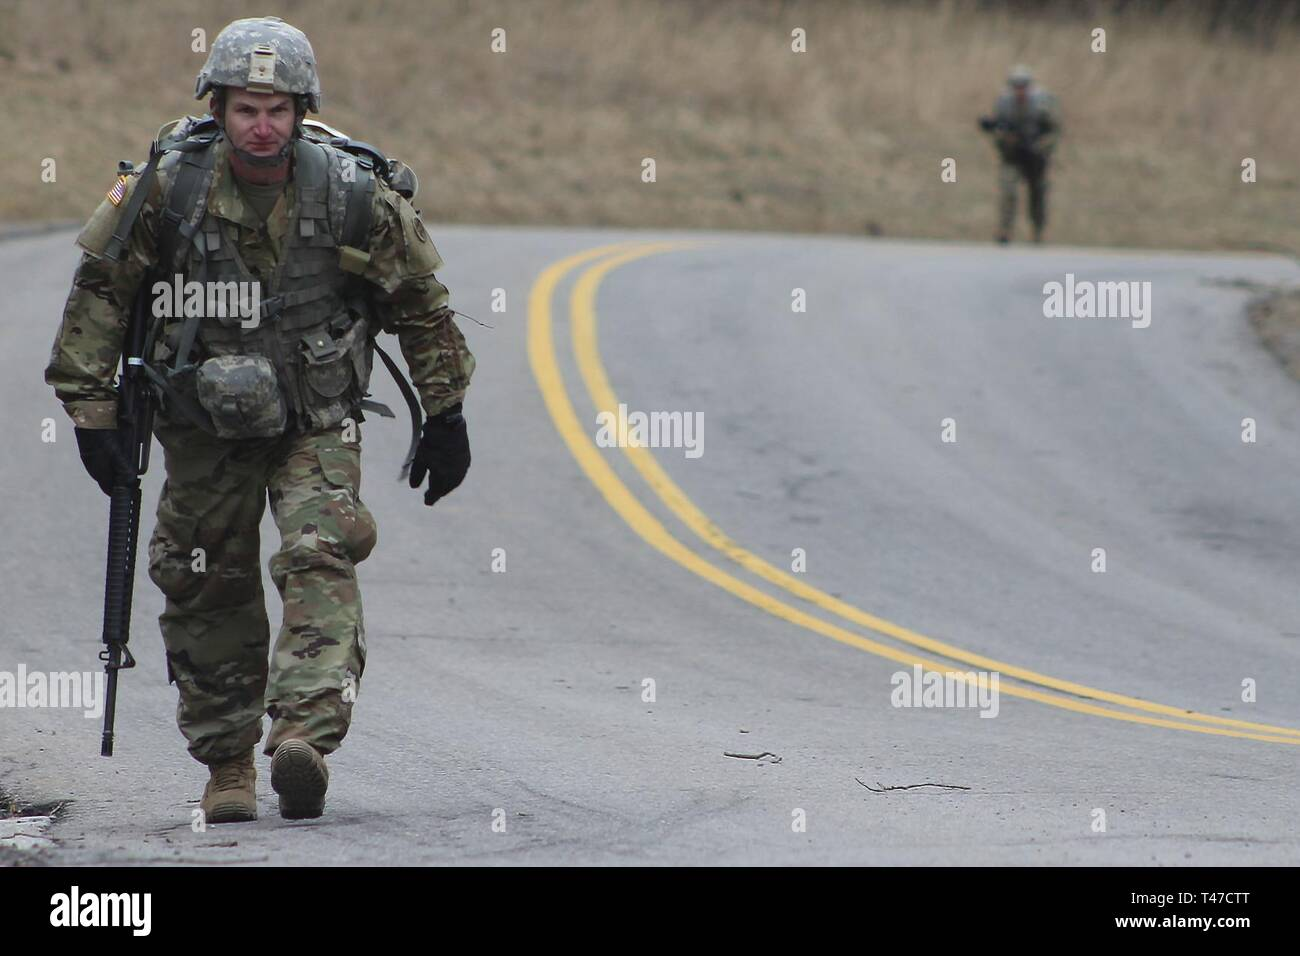 U S Army Reserve Soldier Sgt David Walker 758th Ordnance Company Completed The Ruck March Portion Of The 310th Sustainment Command Expeditionary Best Warrior Competition Here Ft Knox Mar 15 This Is The